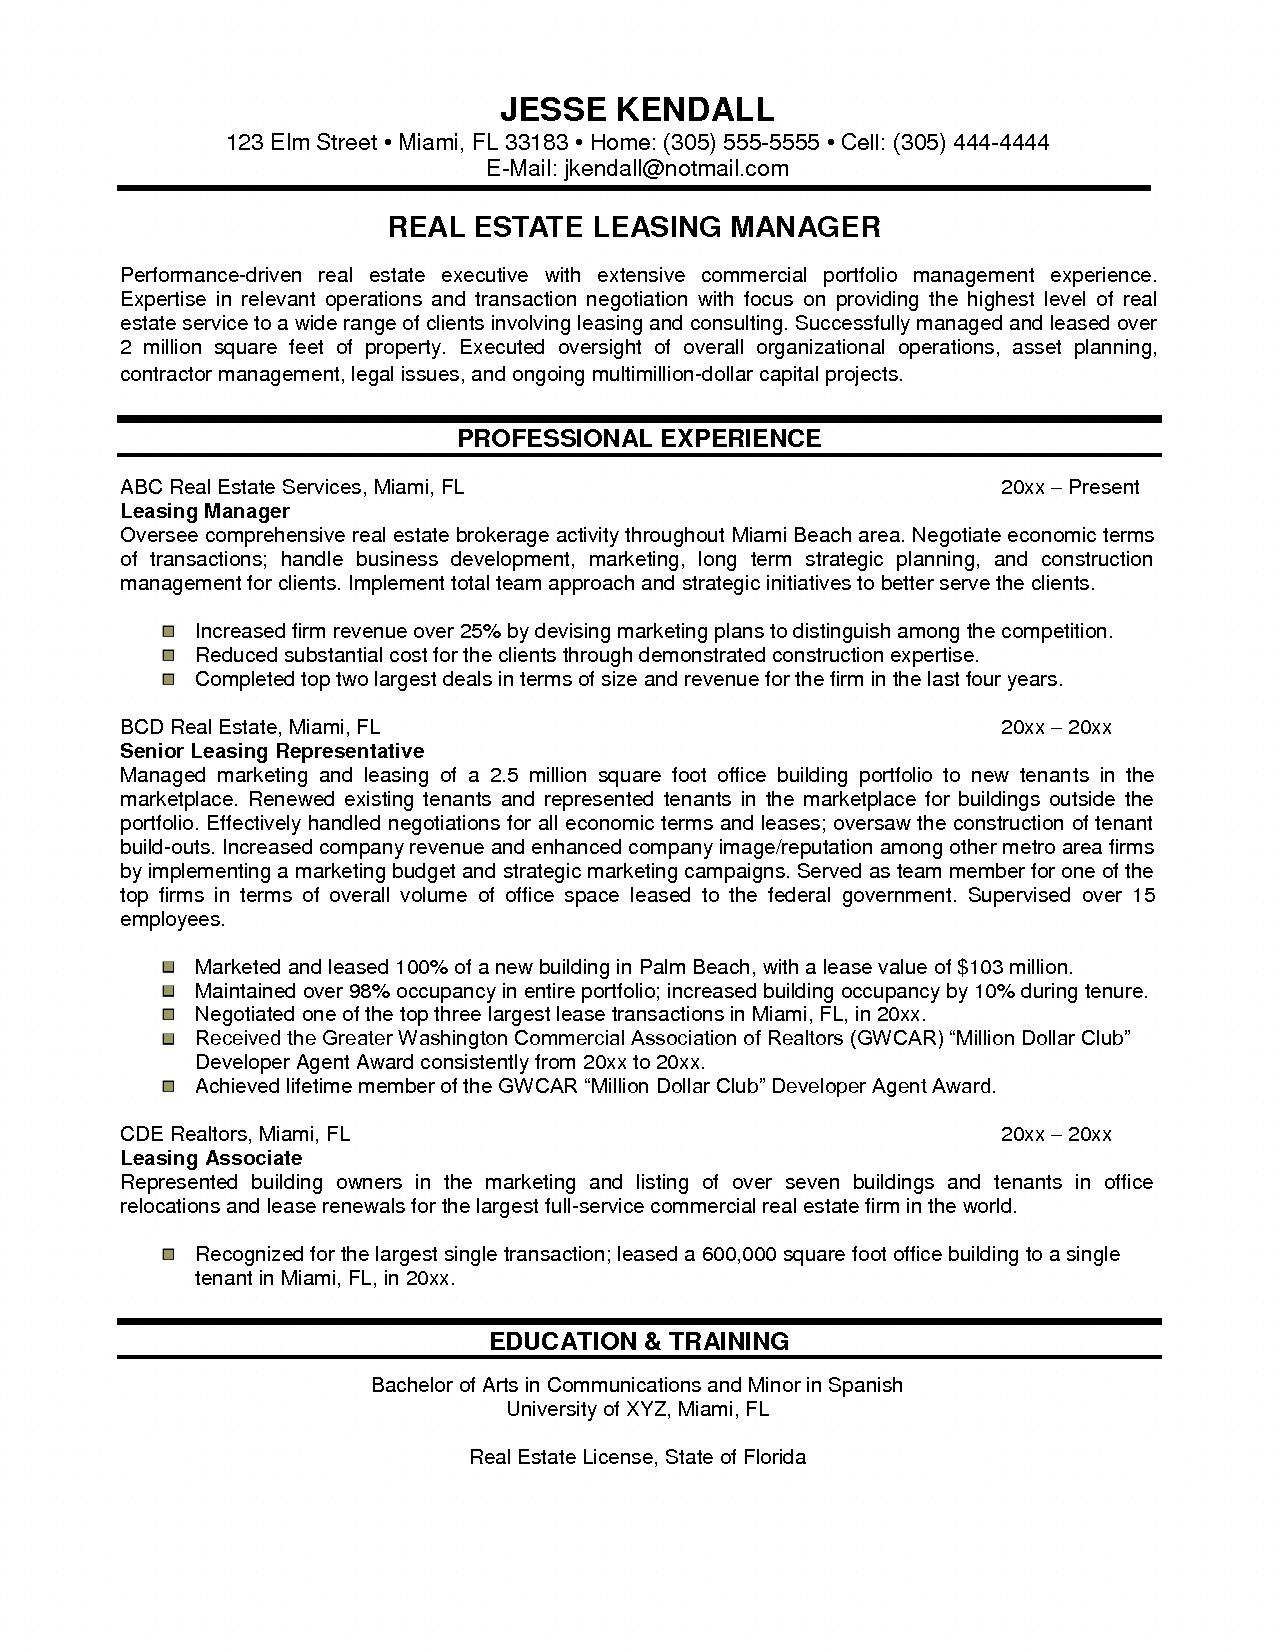 Inventory Management Resume Commercial Property Manager Resume Samples  Building Manager